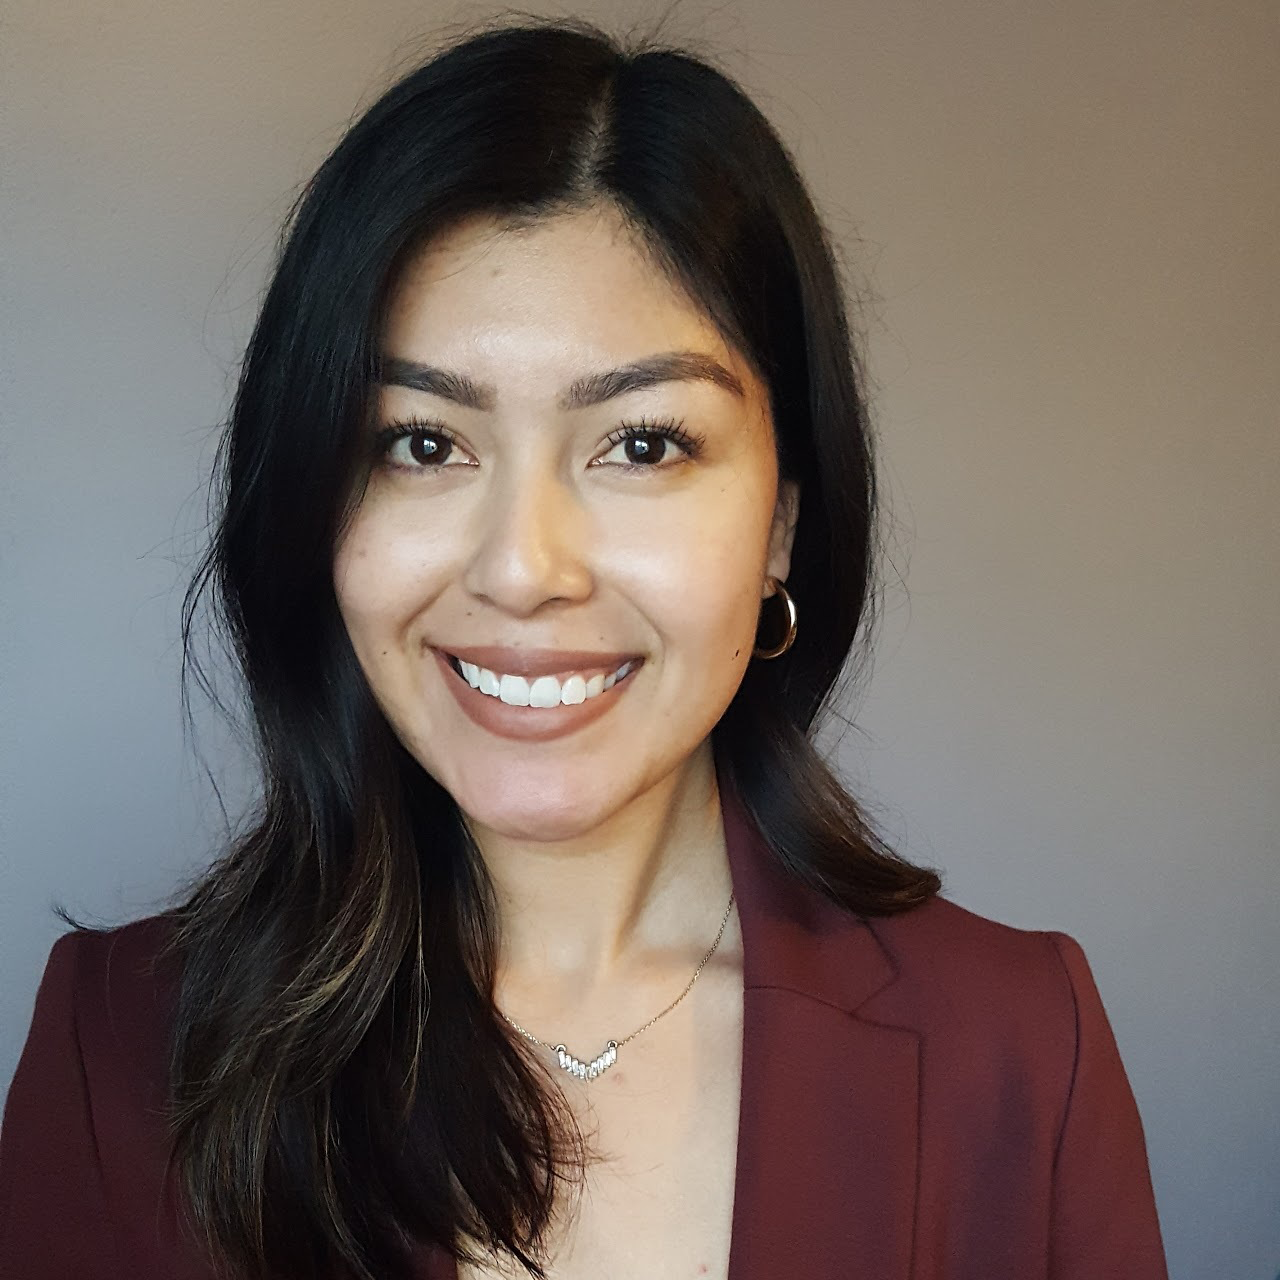 Emily Orozco2019 Alumna matched at Crosscut Ventures Current role: Media Coordinator at RPA Agency